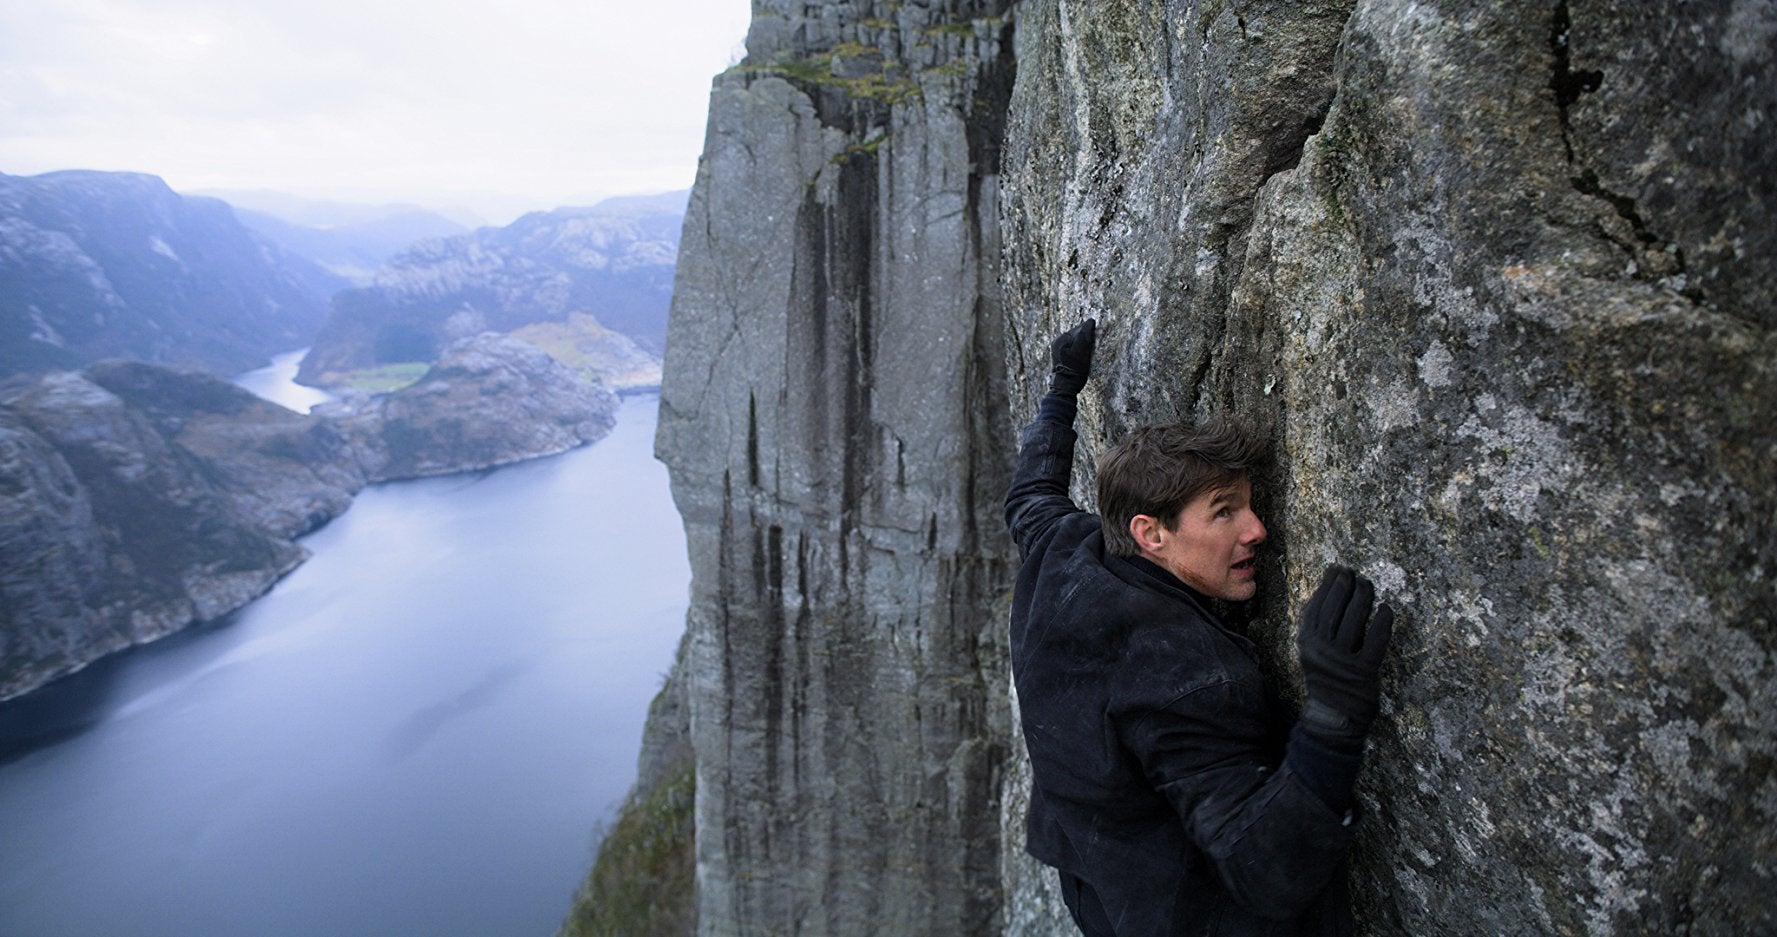 Tom Cruise (or is it???) in Mission: Impossible—Fallout